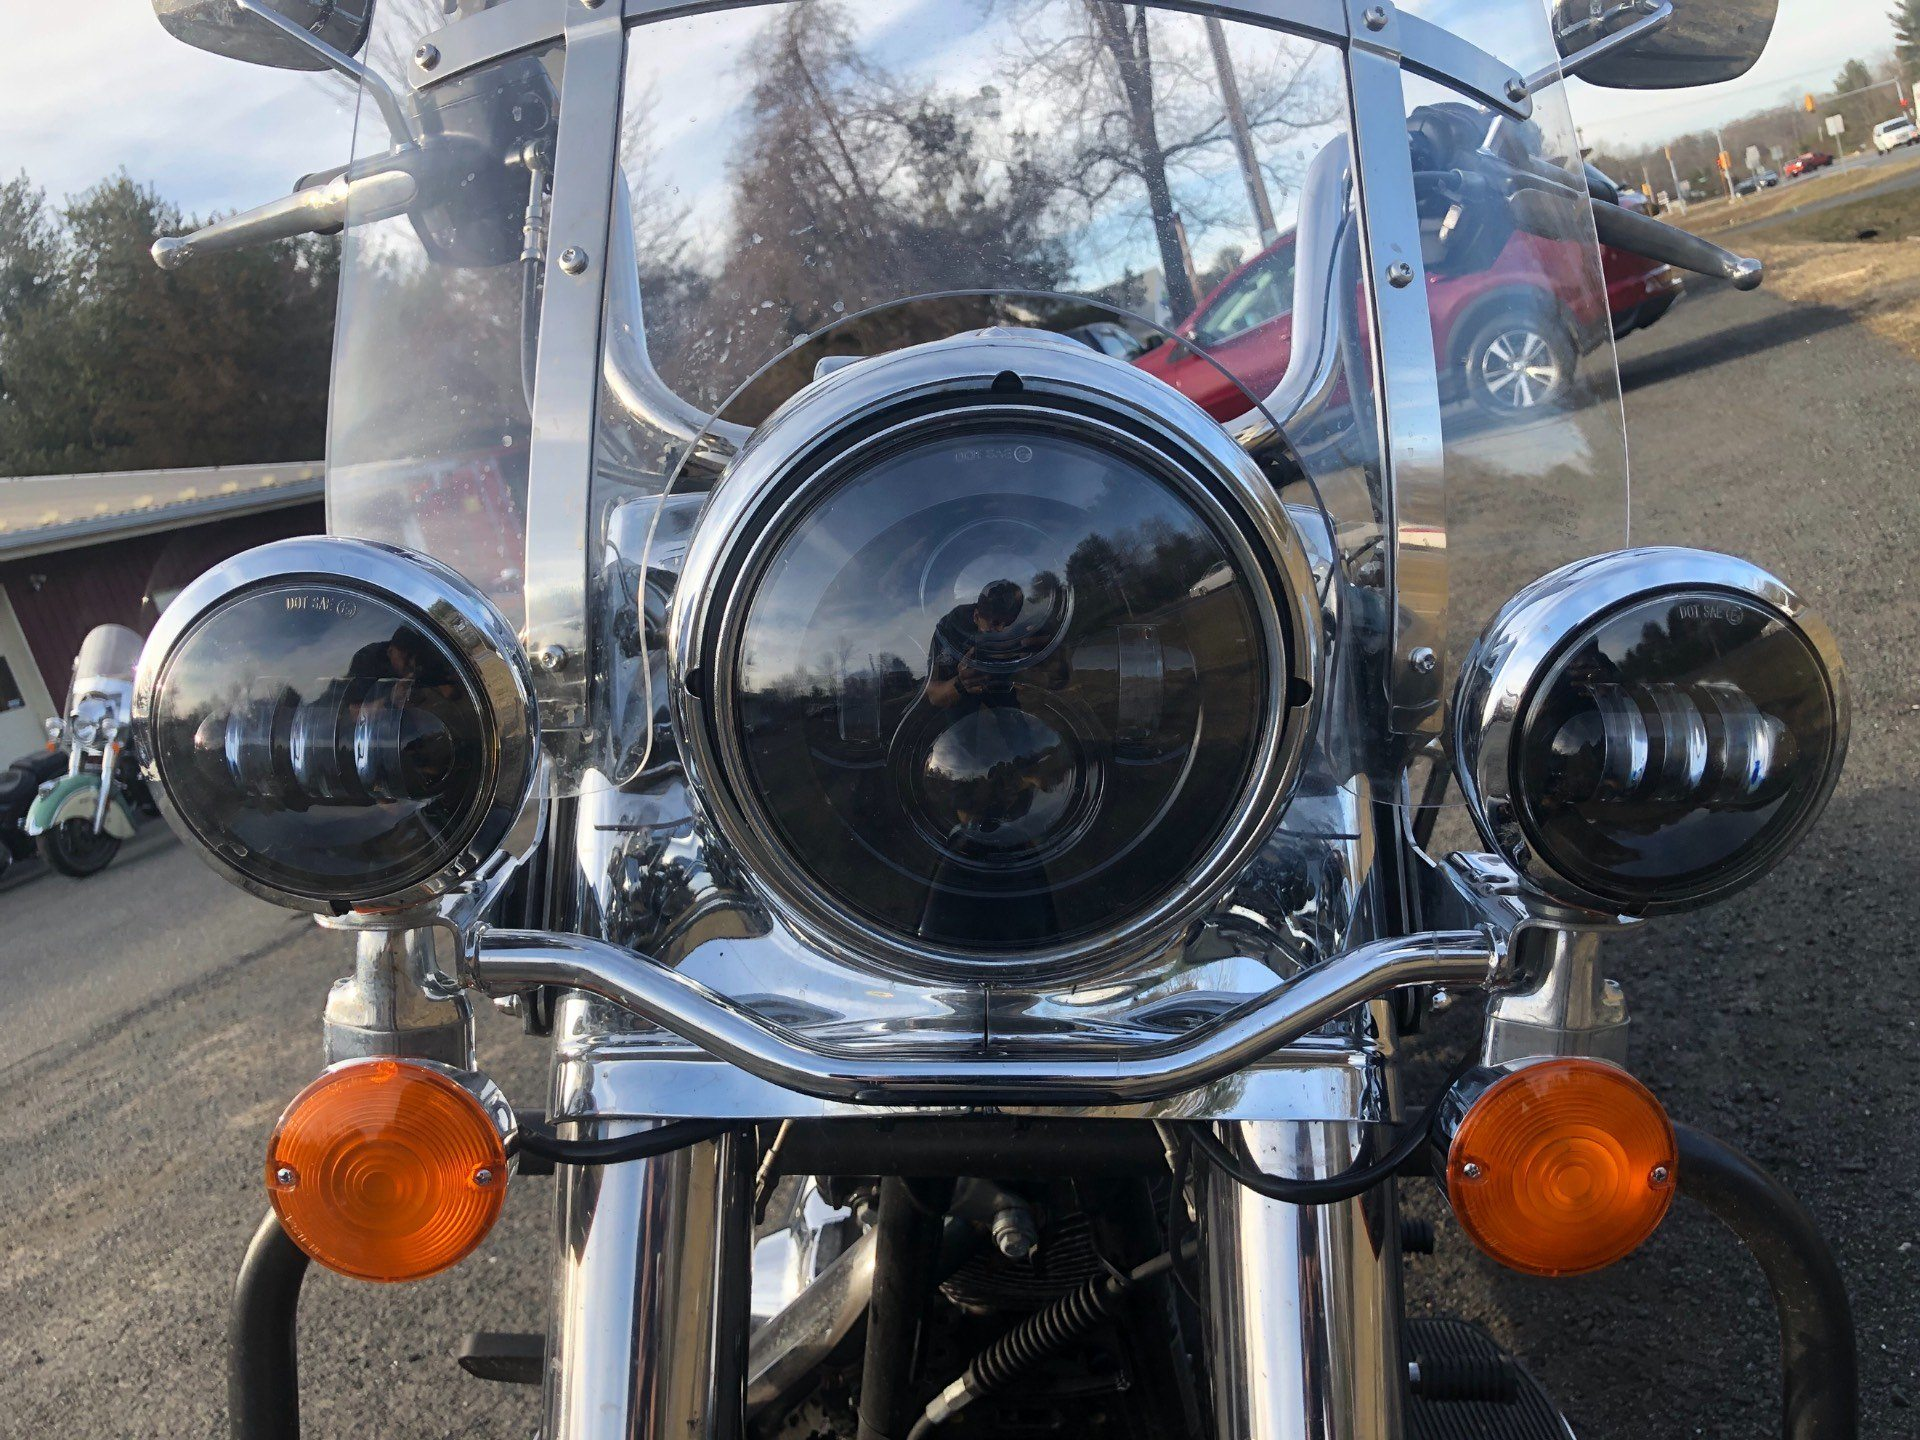 2016 HARLEY-DAVIDSON Road king in Westfield, Massachusetts